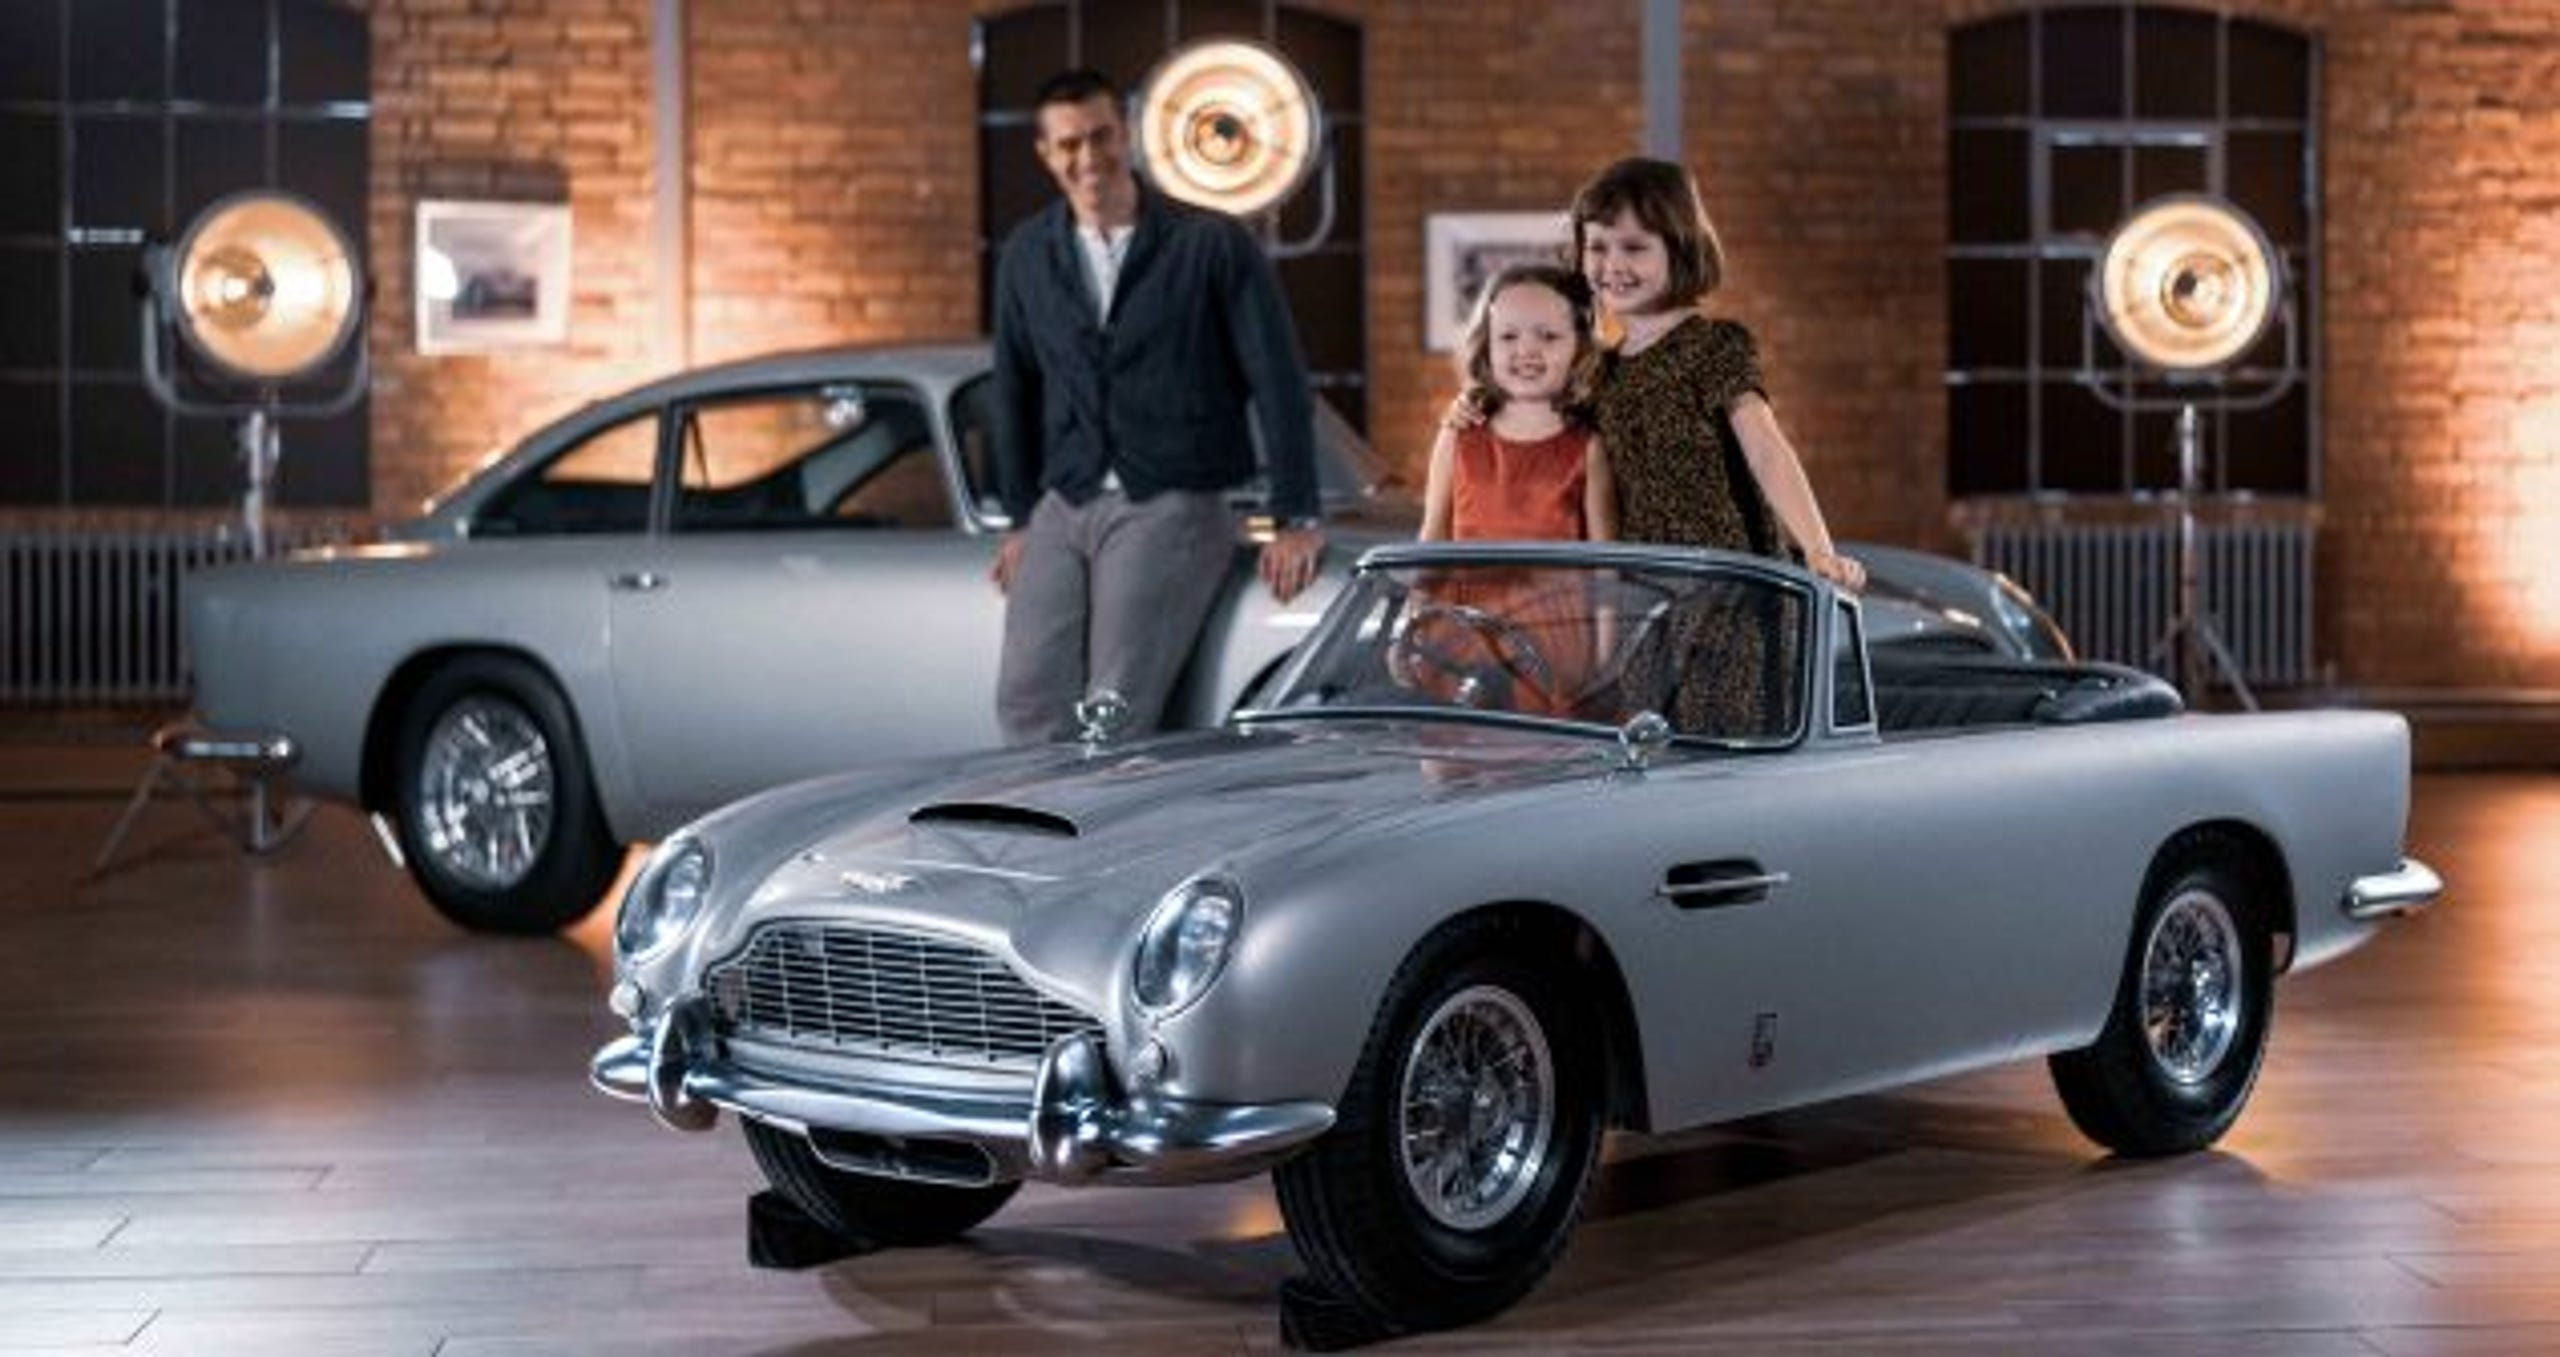 Aston Martin S Db5 Junior Is Made For James Bond Fans Of All Ages